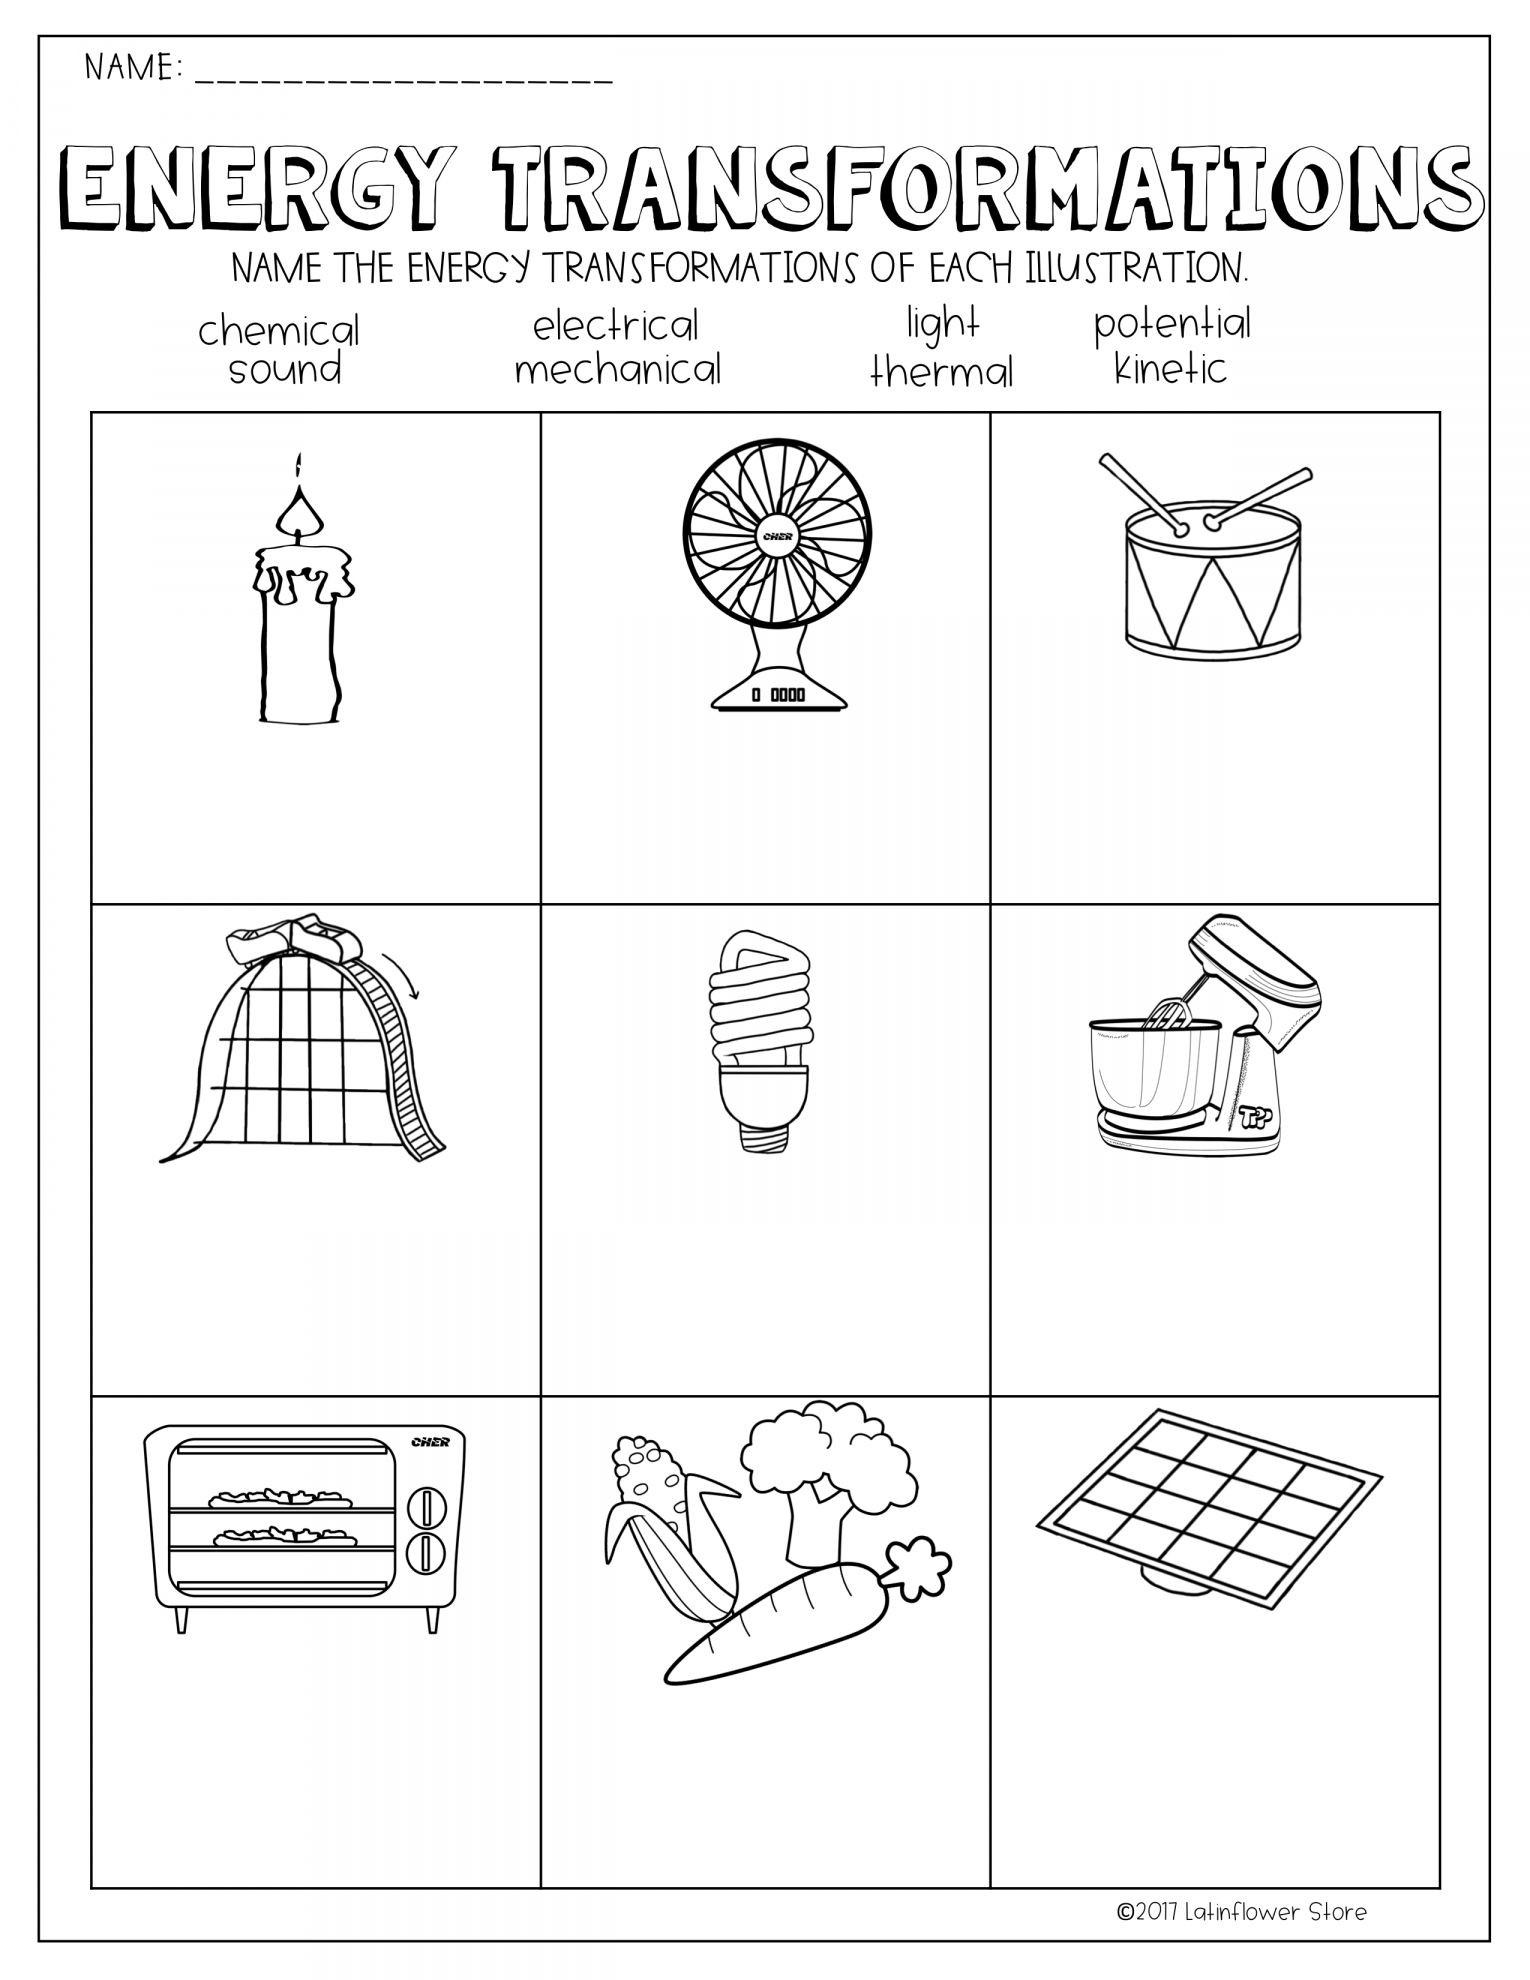 Energy Transformation Worksheet Pdf Pin On Energy Transformations Activities